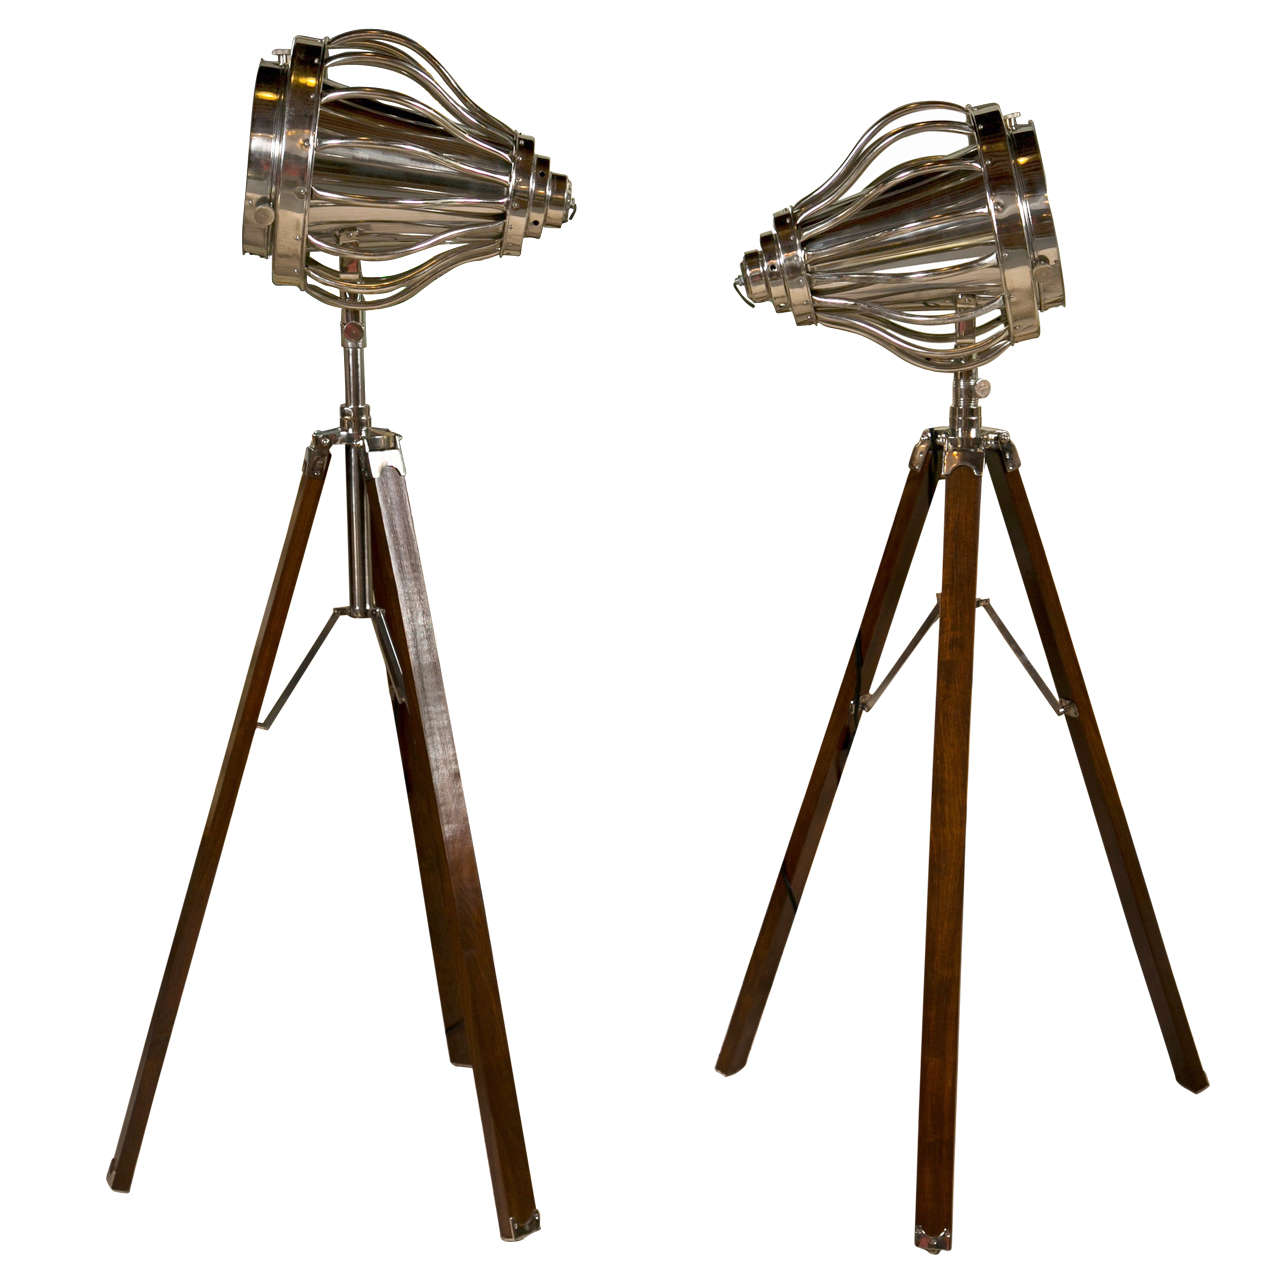 Industrial lamps for sale - Pair Of Industrial Style Tripod Floor Lamps 1